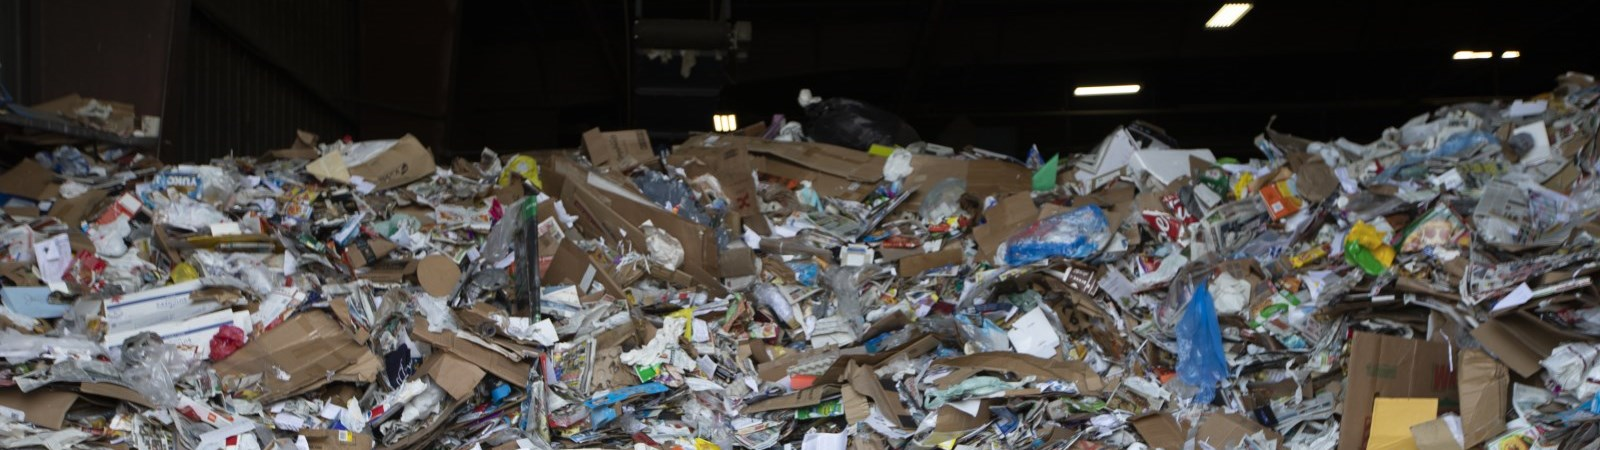 Recyclable materials in a large pile